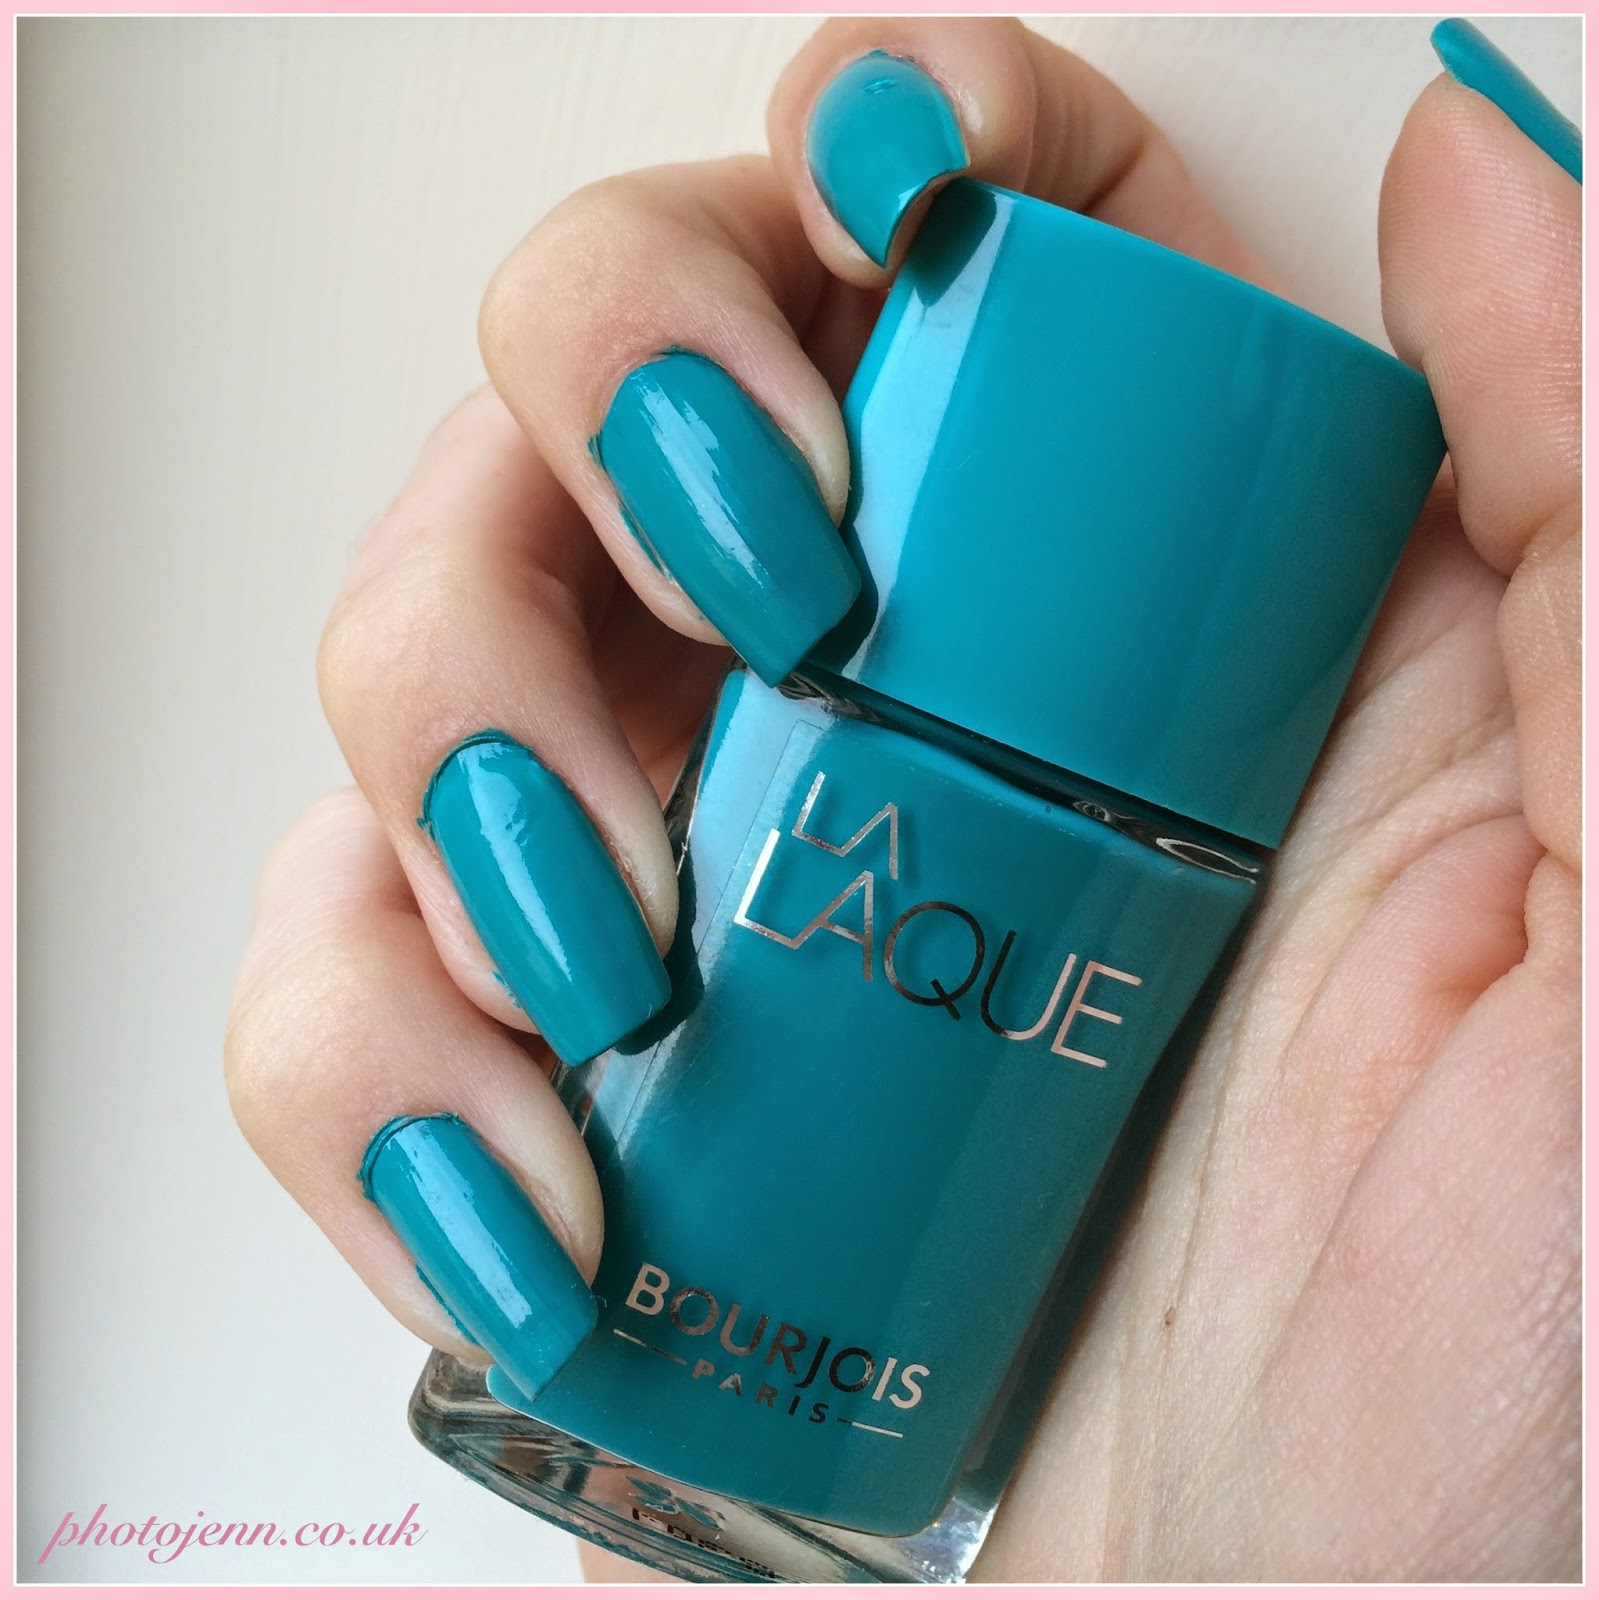 bourjois-la-laque-nail-polish-Ni-Vernis-Bleu-swatch